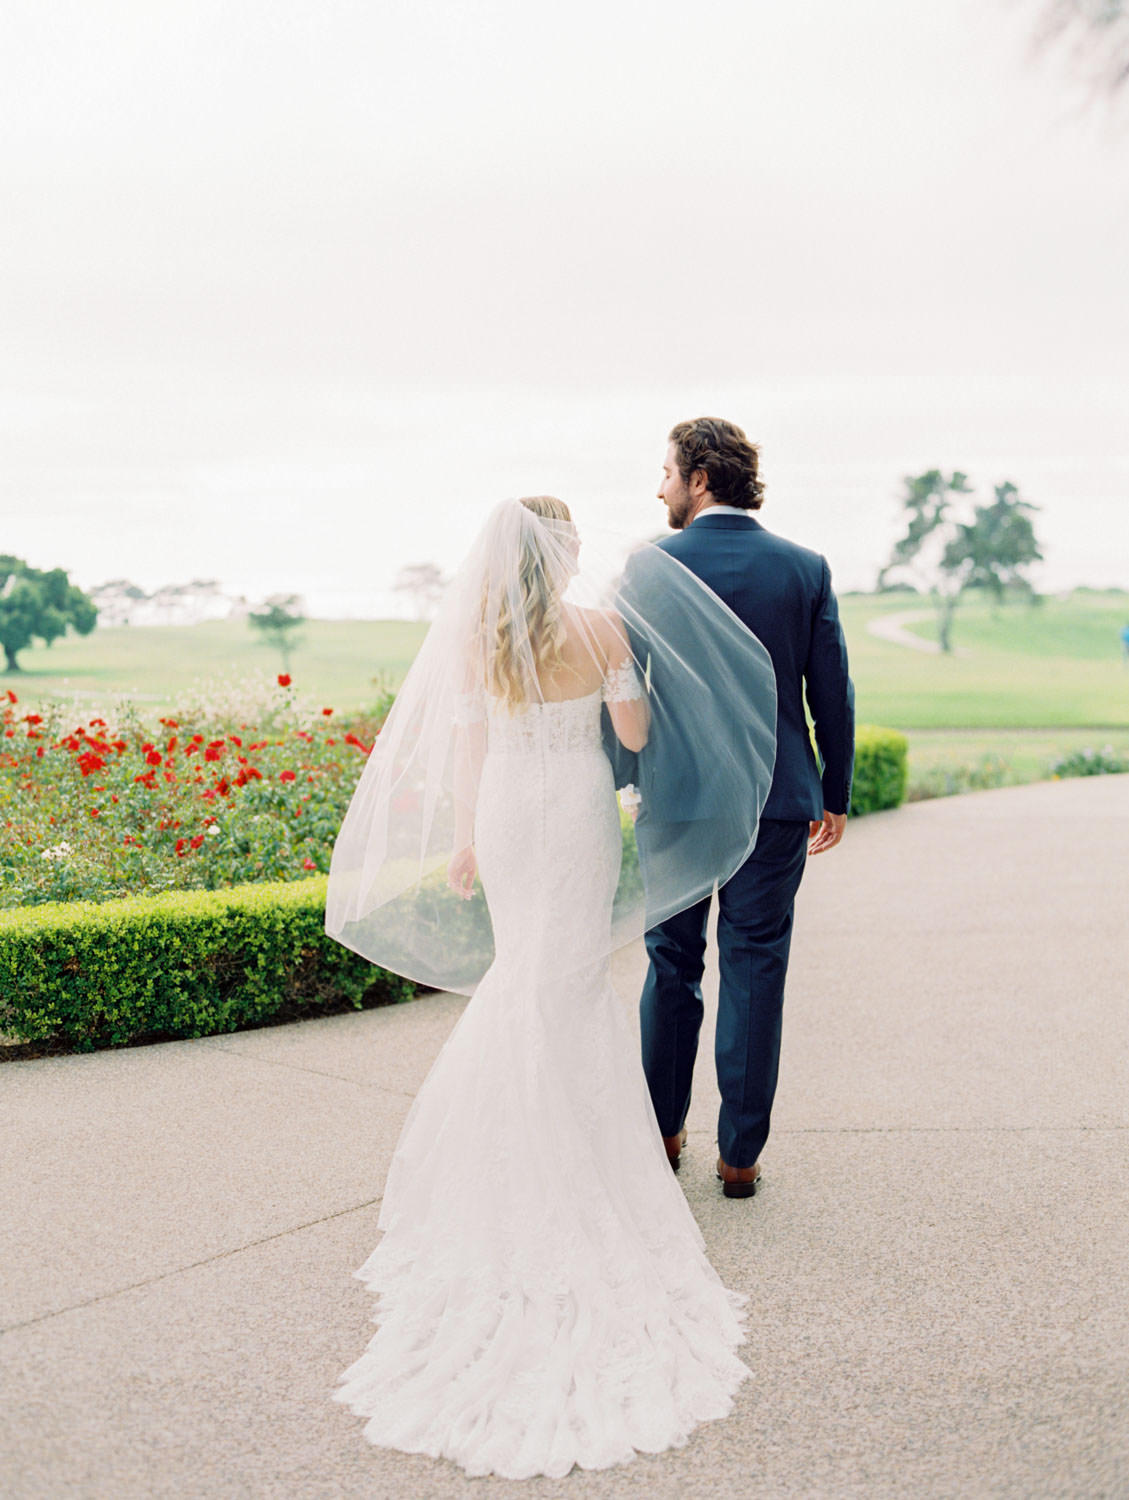 Bride in Pronovias off shoulder lace gown and long train and veil walking on garden pathway with groom in navy suit and rose boutonniere, Lodge at Torrey Pines wedding, film photography by Cavin Elizabeth Photography